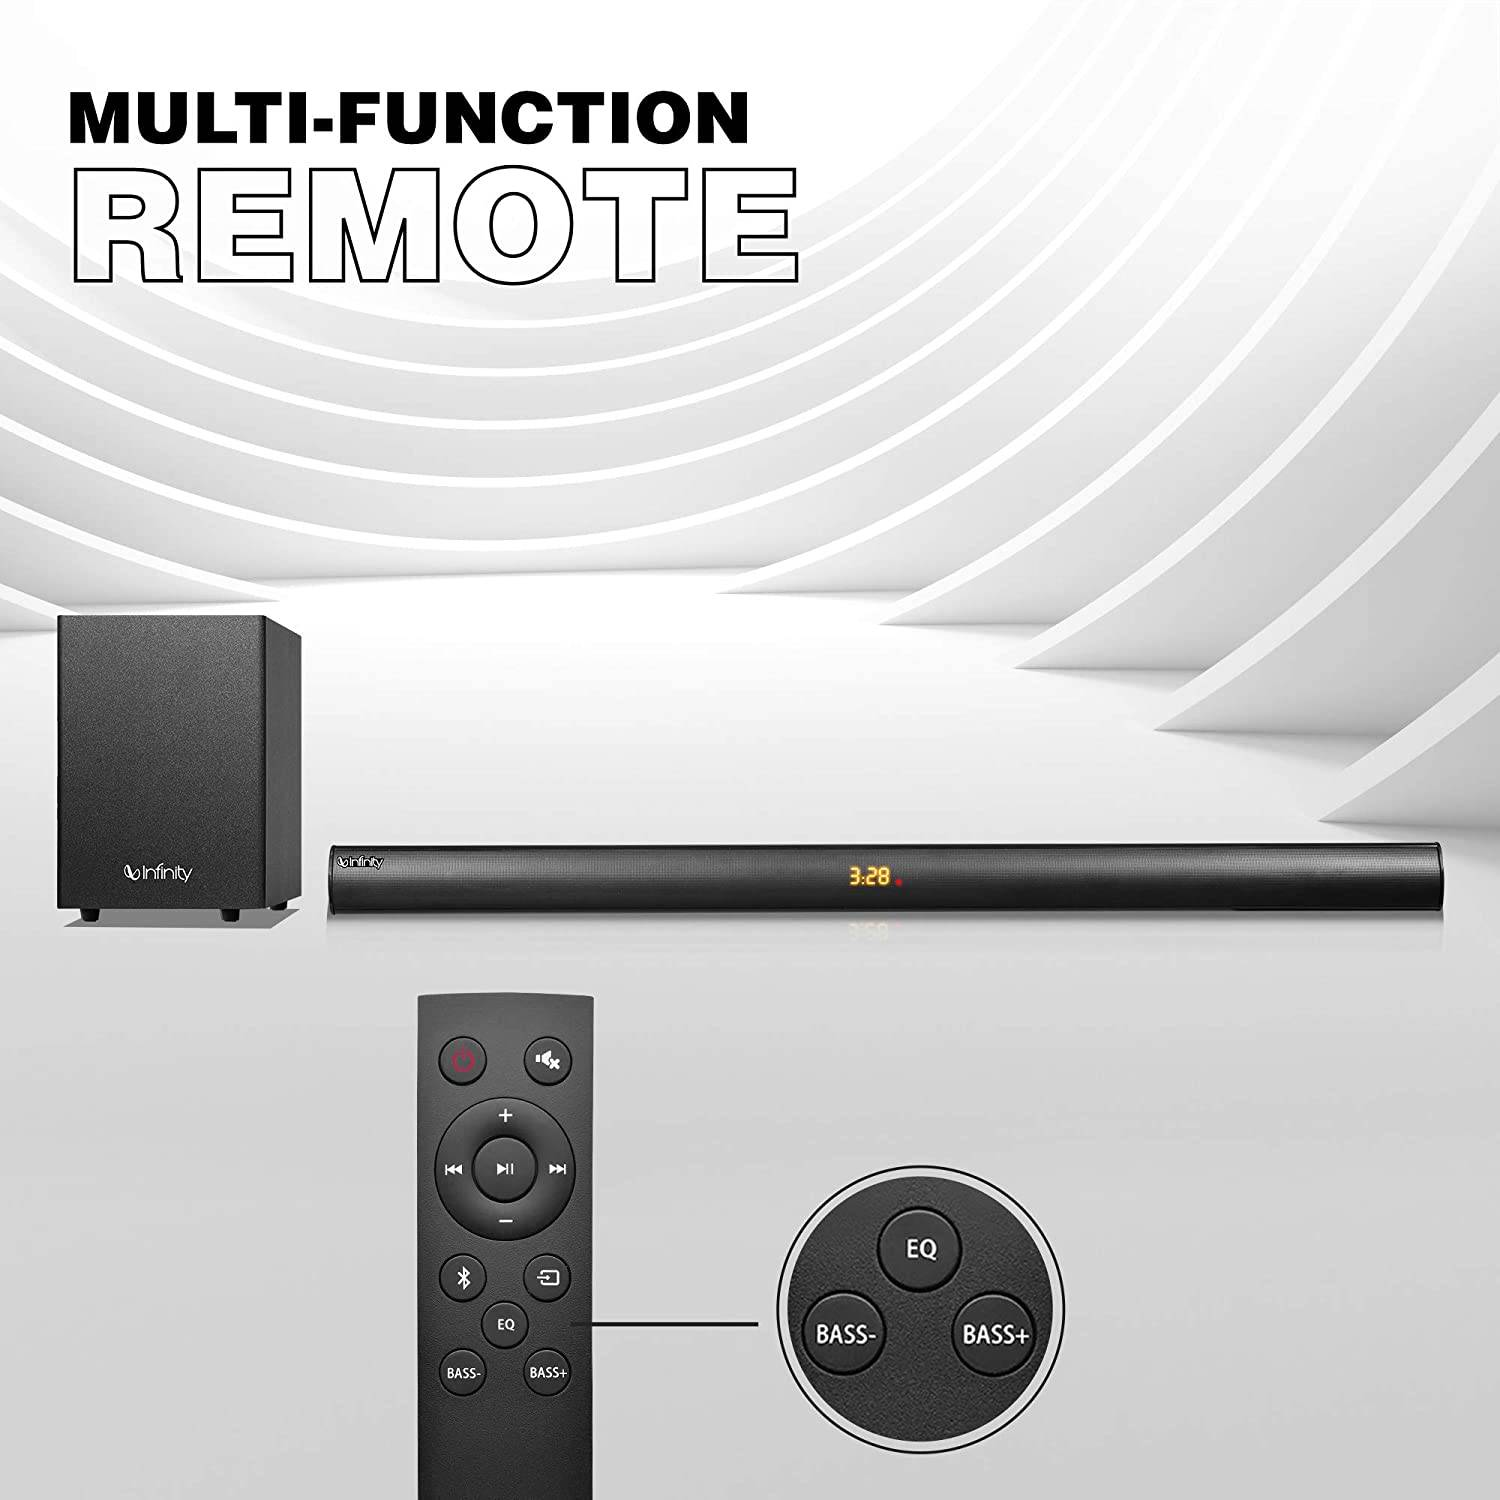 A Remote with multiple functions